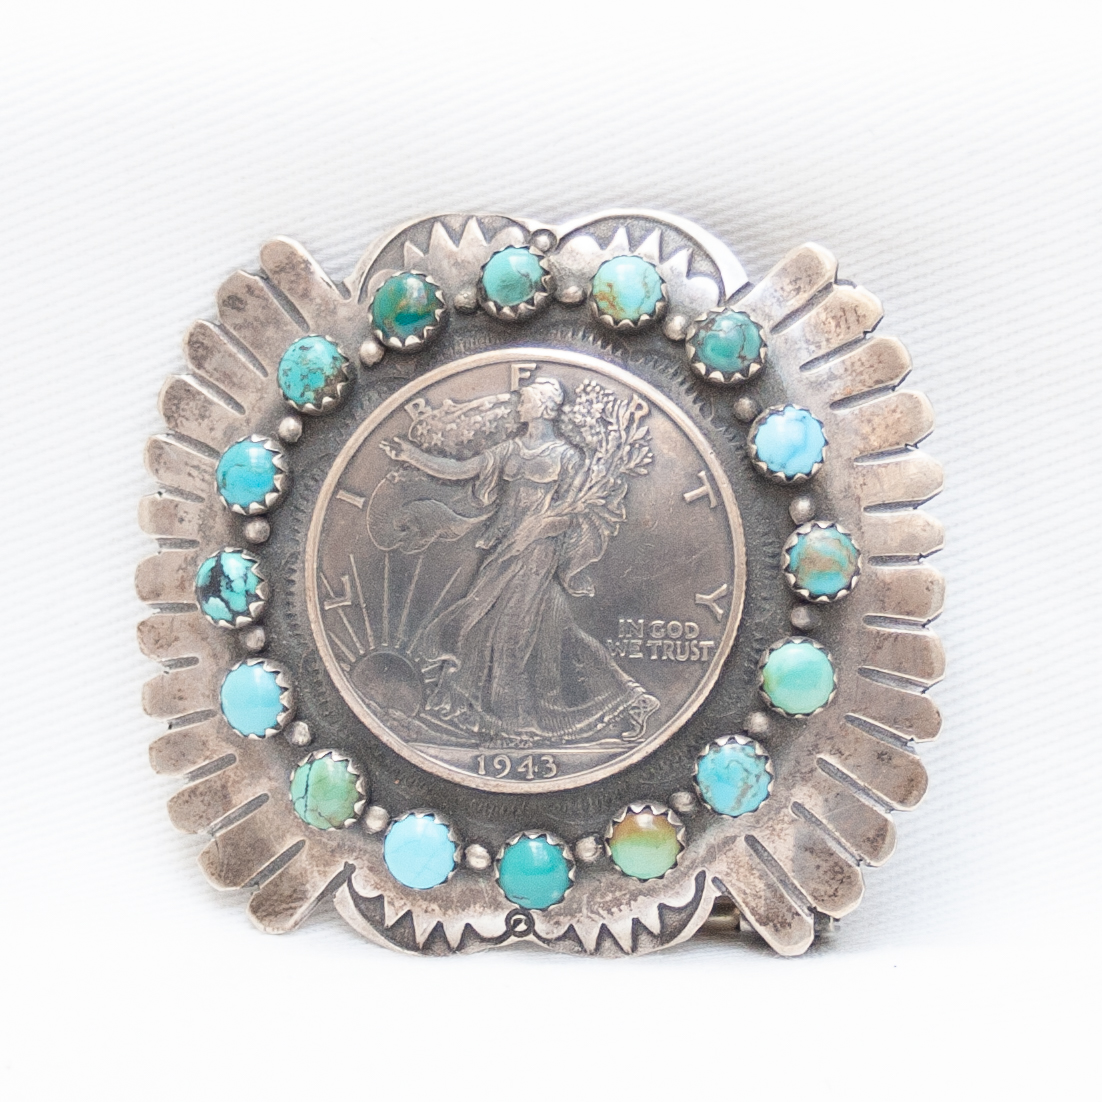 Dylan Hopper Liberty Coin Silver Turquoise Belt Buckle